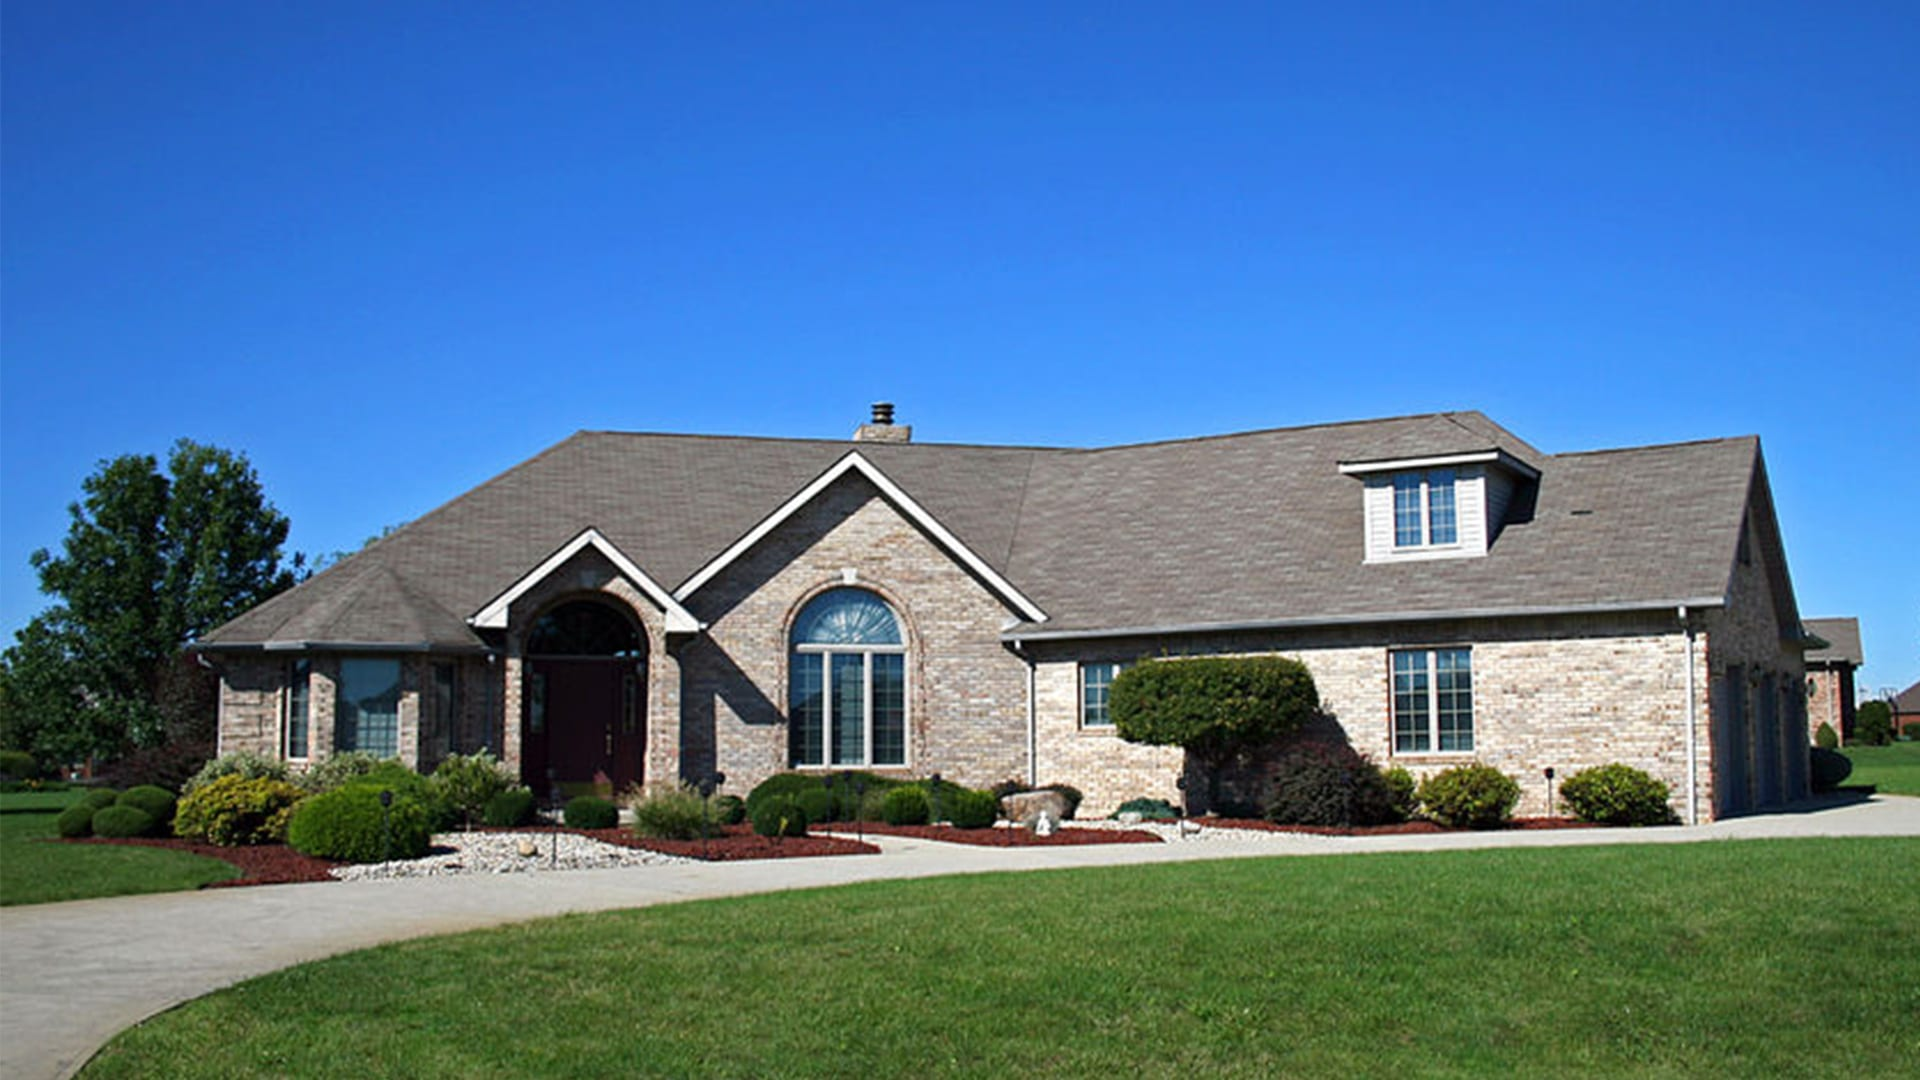 Photograph of a light brick home with beautiful landscaping.